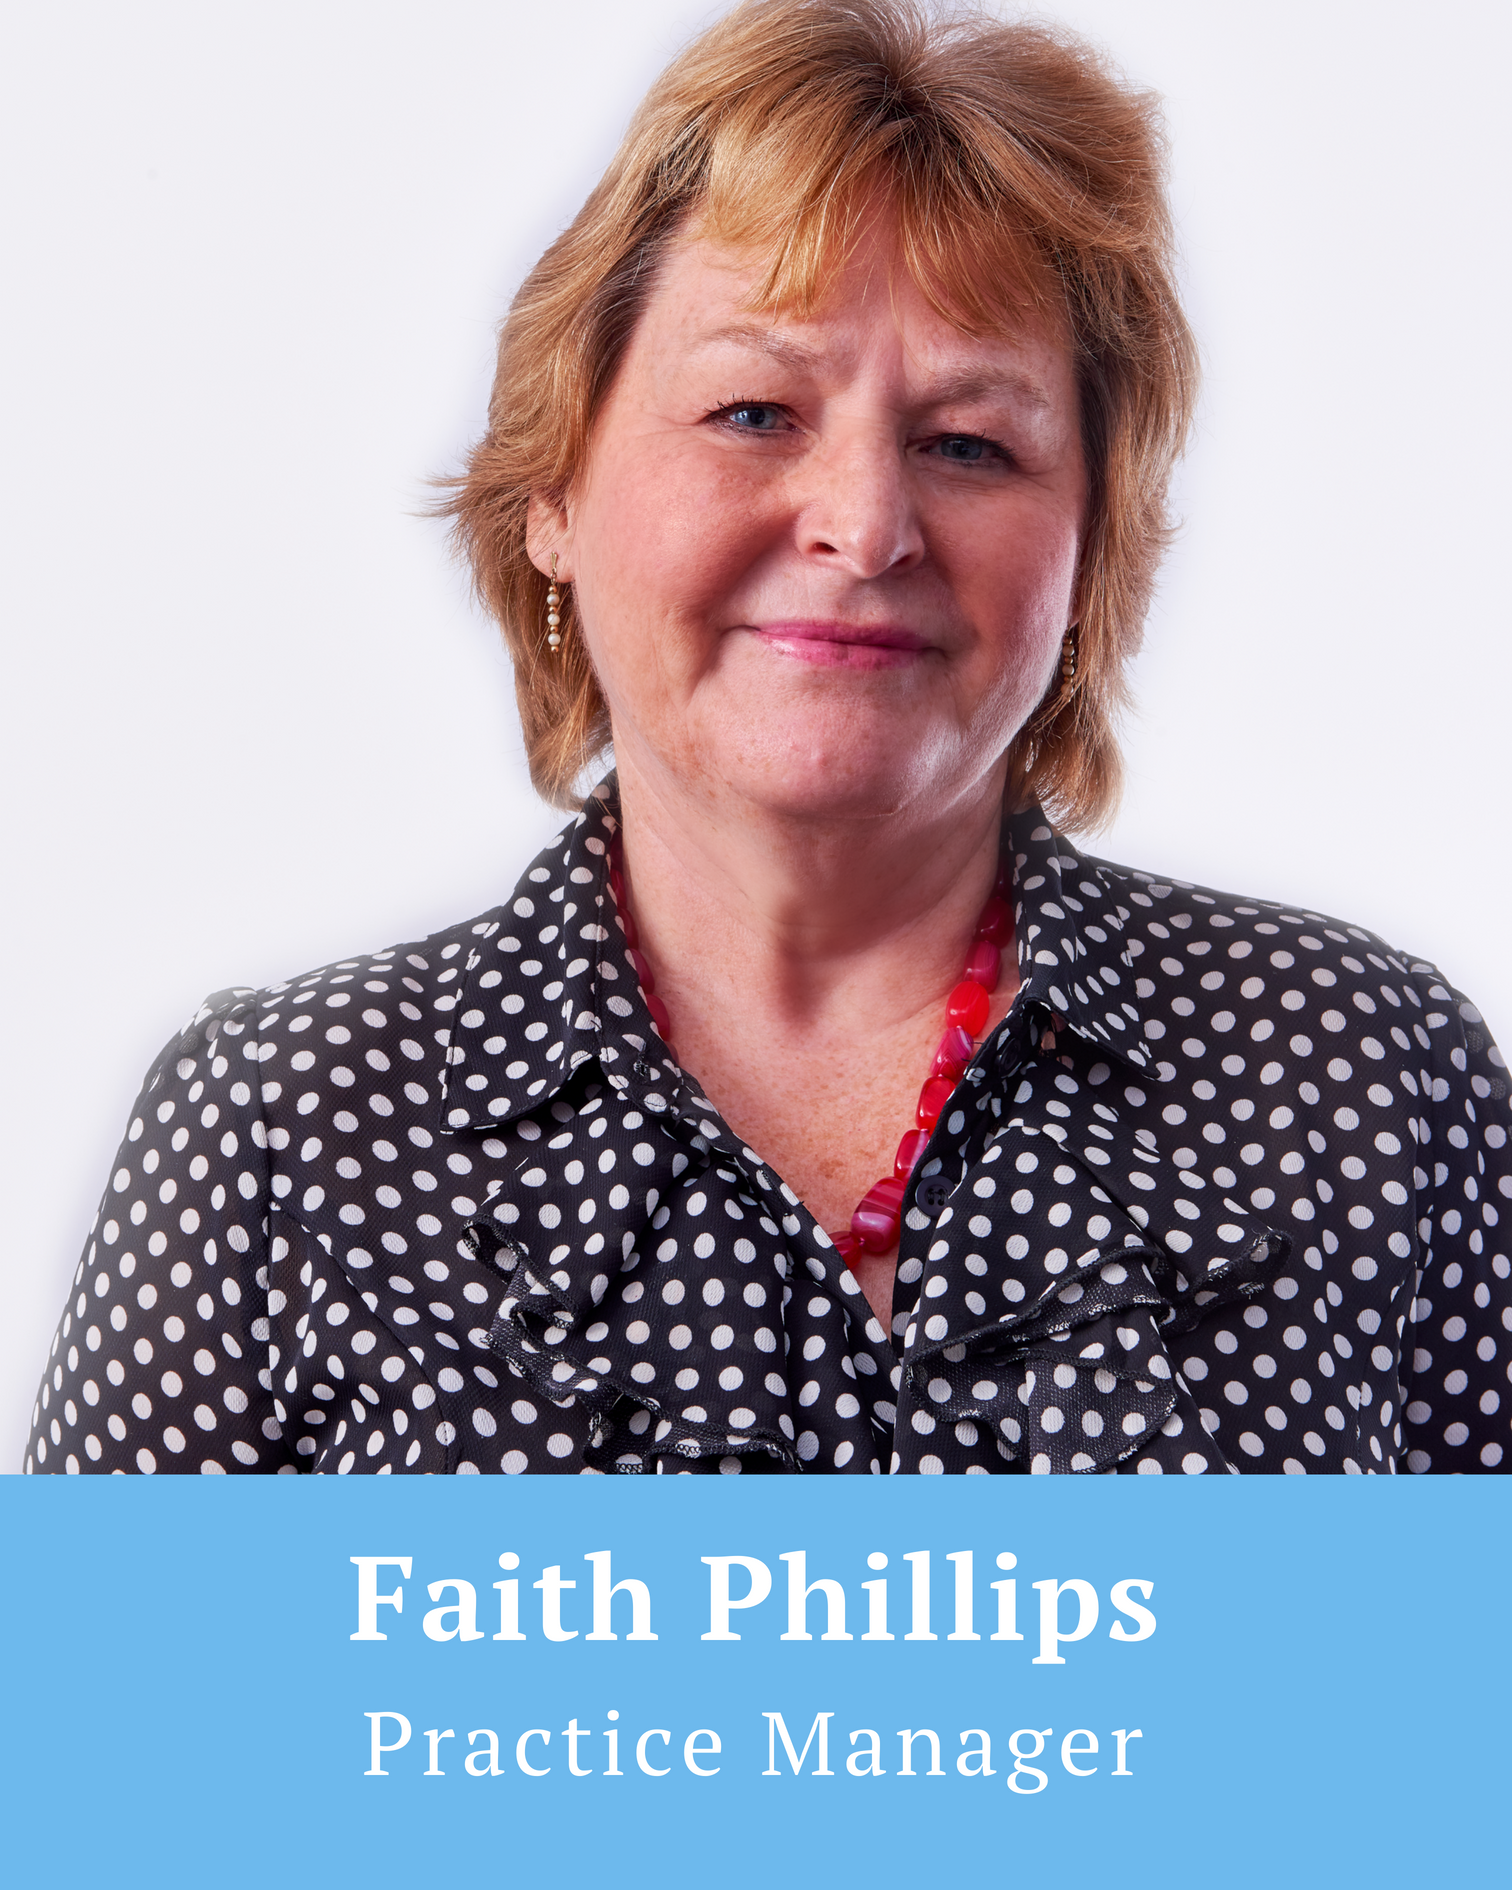 faith phillips practice manager